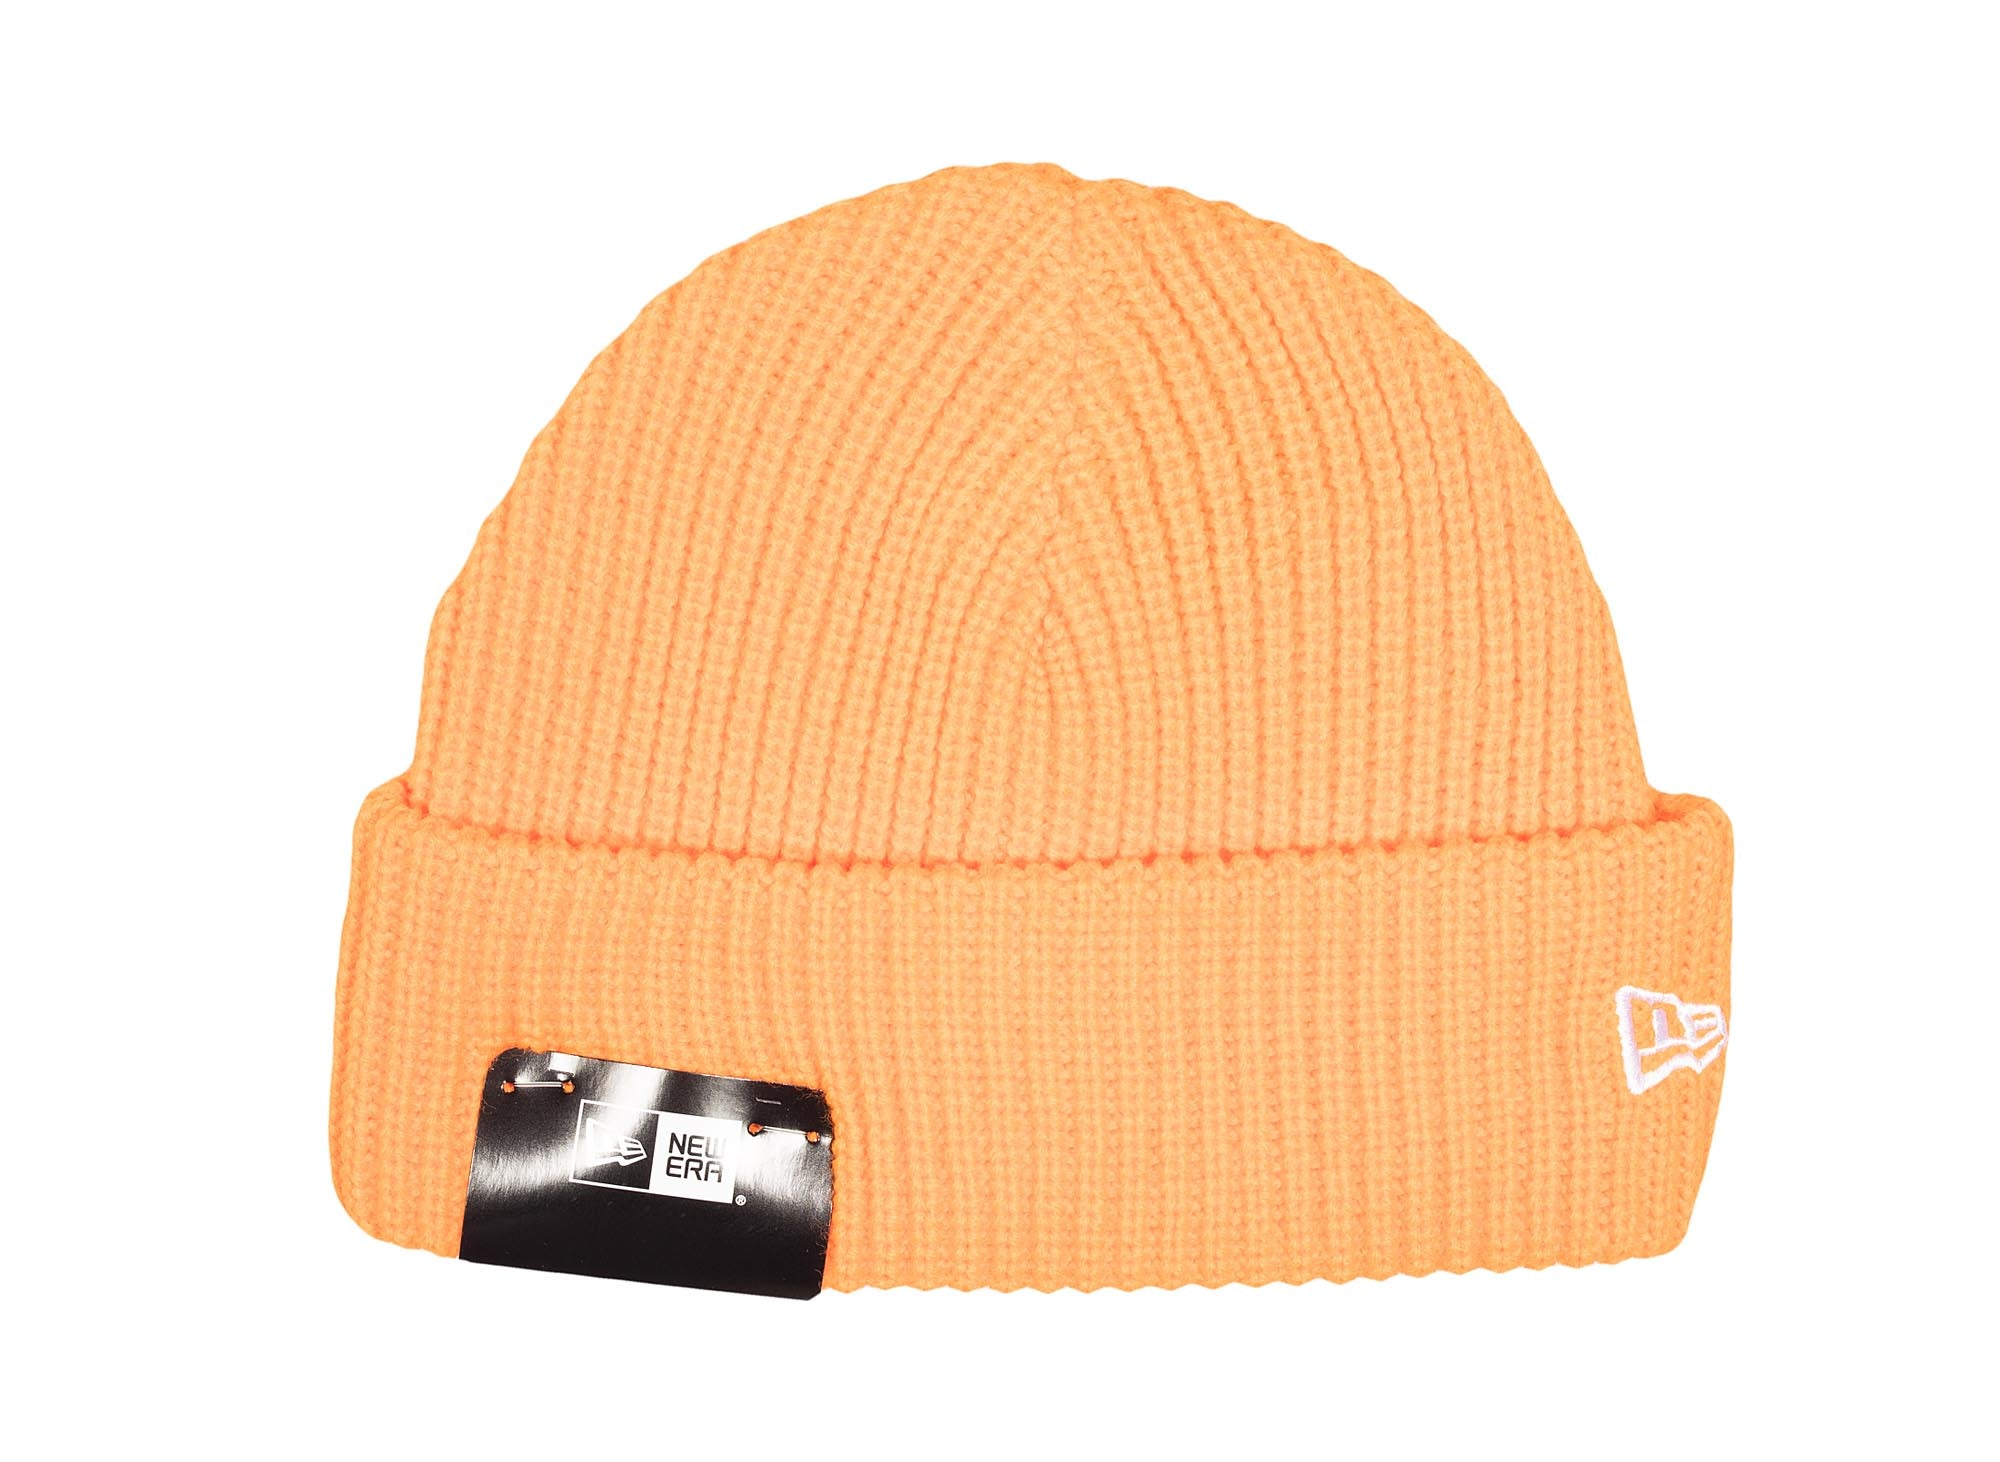 New Era Cuff Knit Beanie 'Bright Orange'